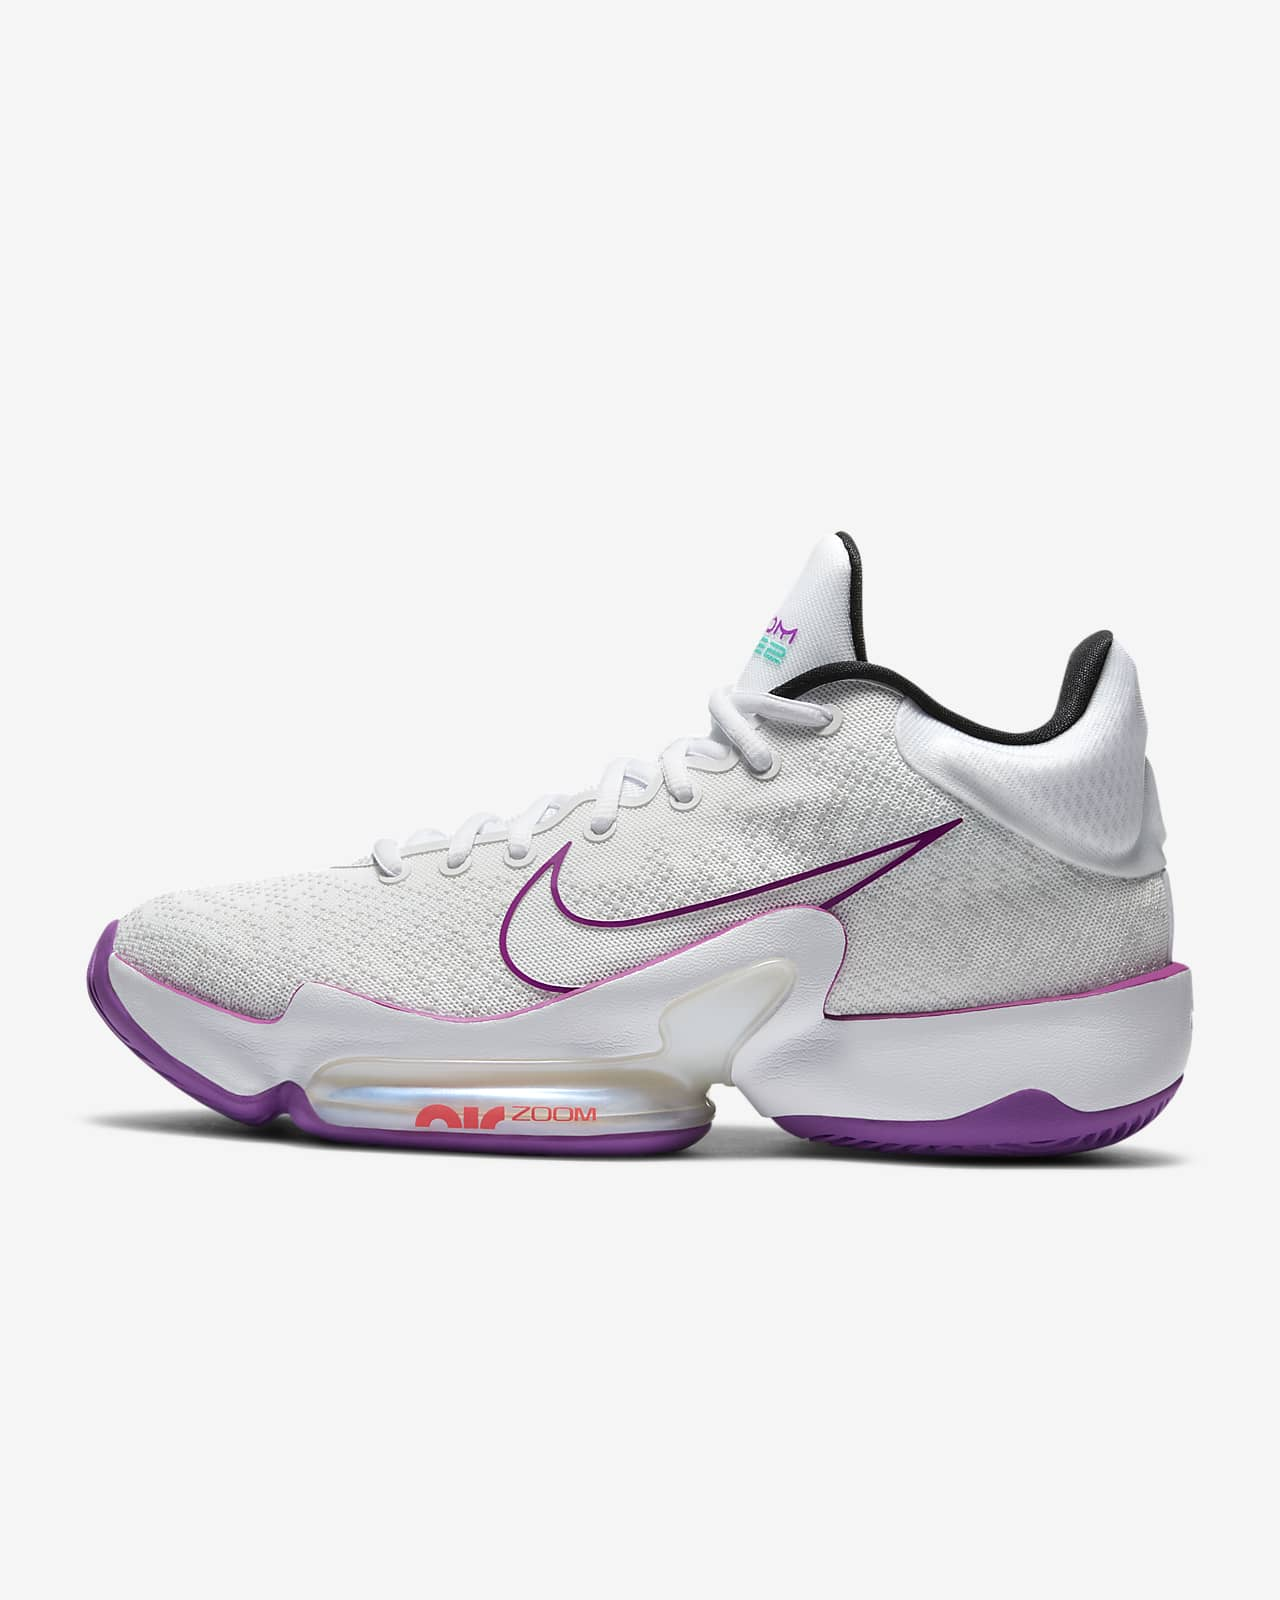 Nike Zoom Rize 2 Basketball Shoe